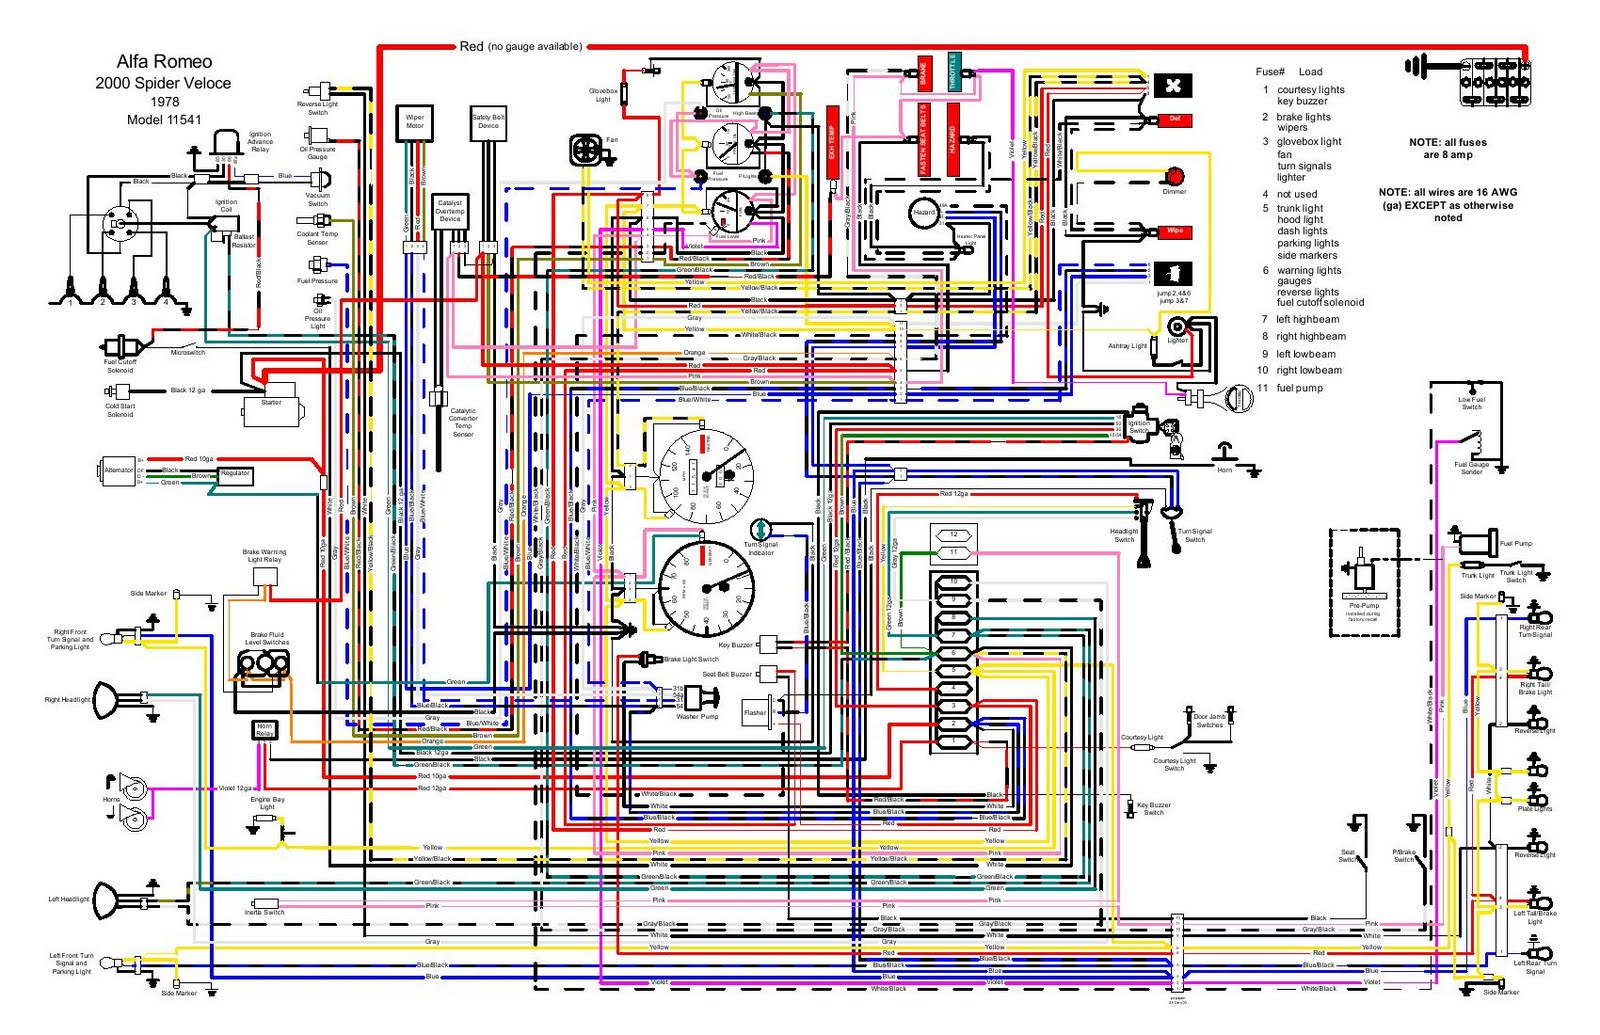 TR_4348] Alfa Romeo Wiring Diagram Find A Guide With Wiring Diagram Images  Download DiagramWww Mohammedshrine Librar Wiring 101